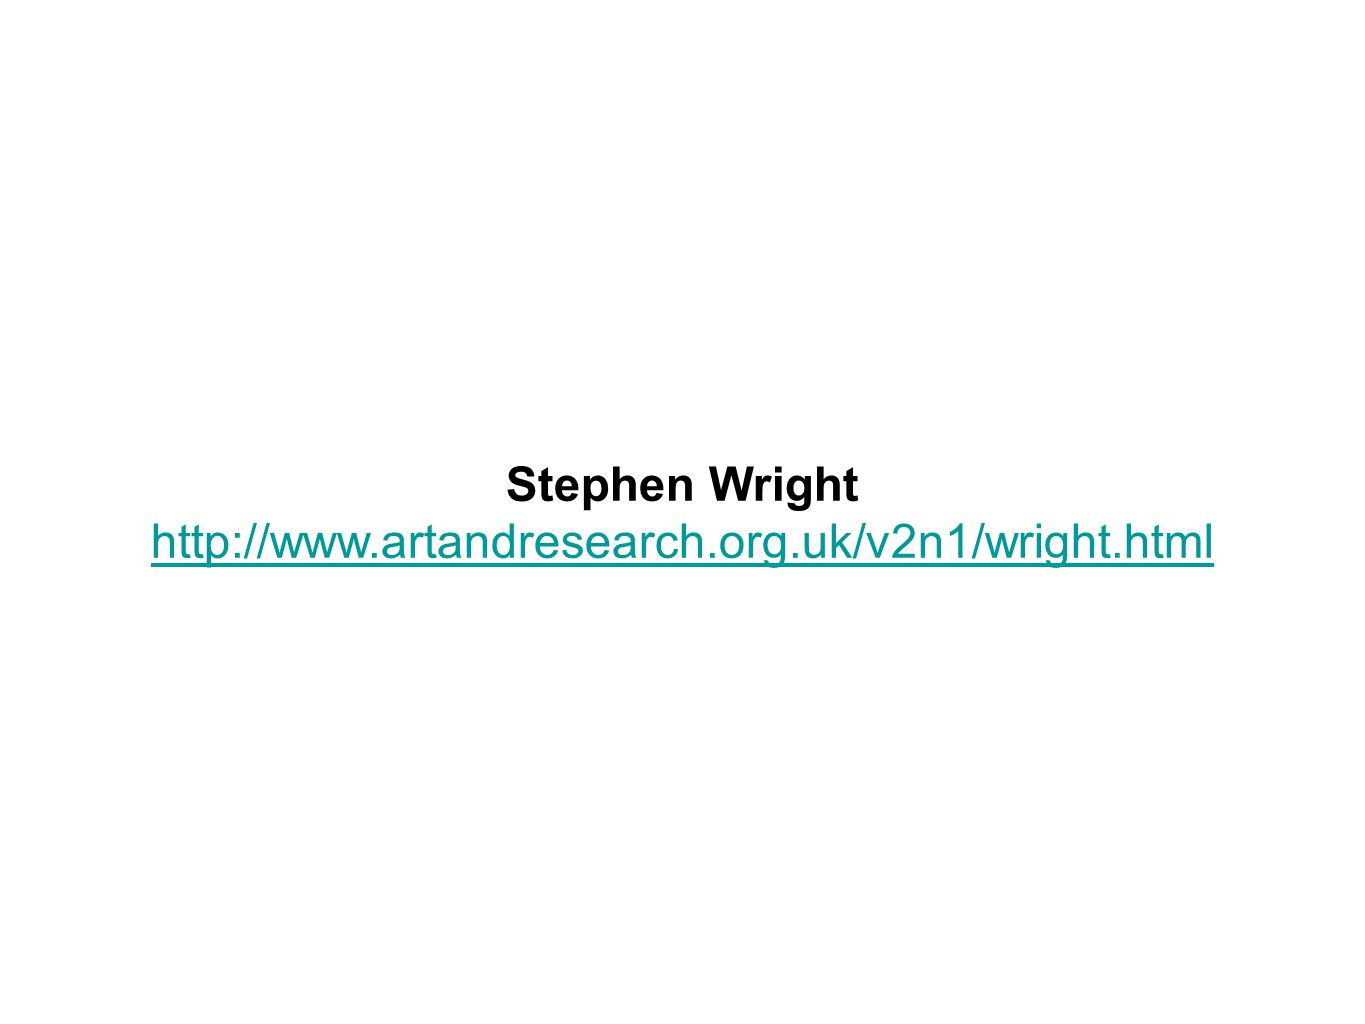 Stephen Wright http://www.artandresearch.org.uk/v2n1/wright.html